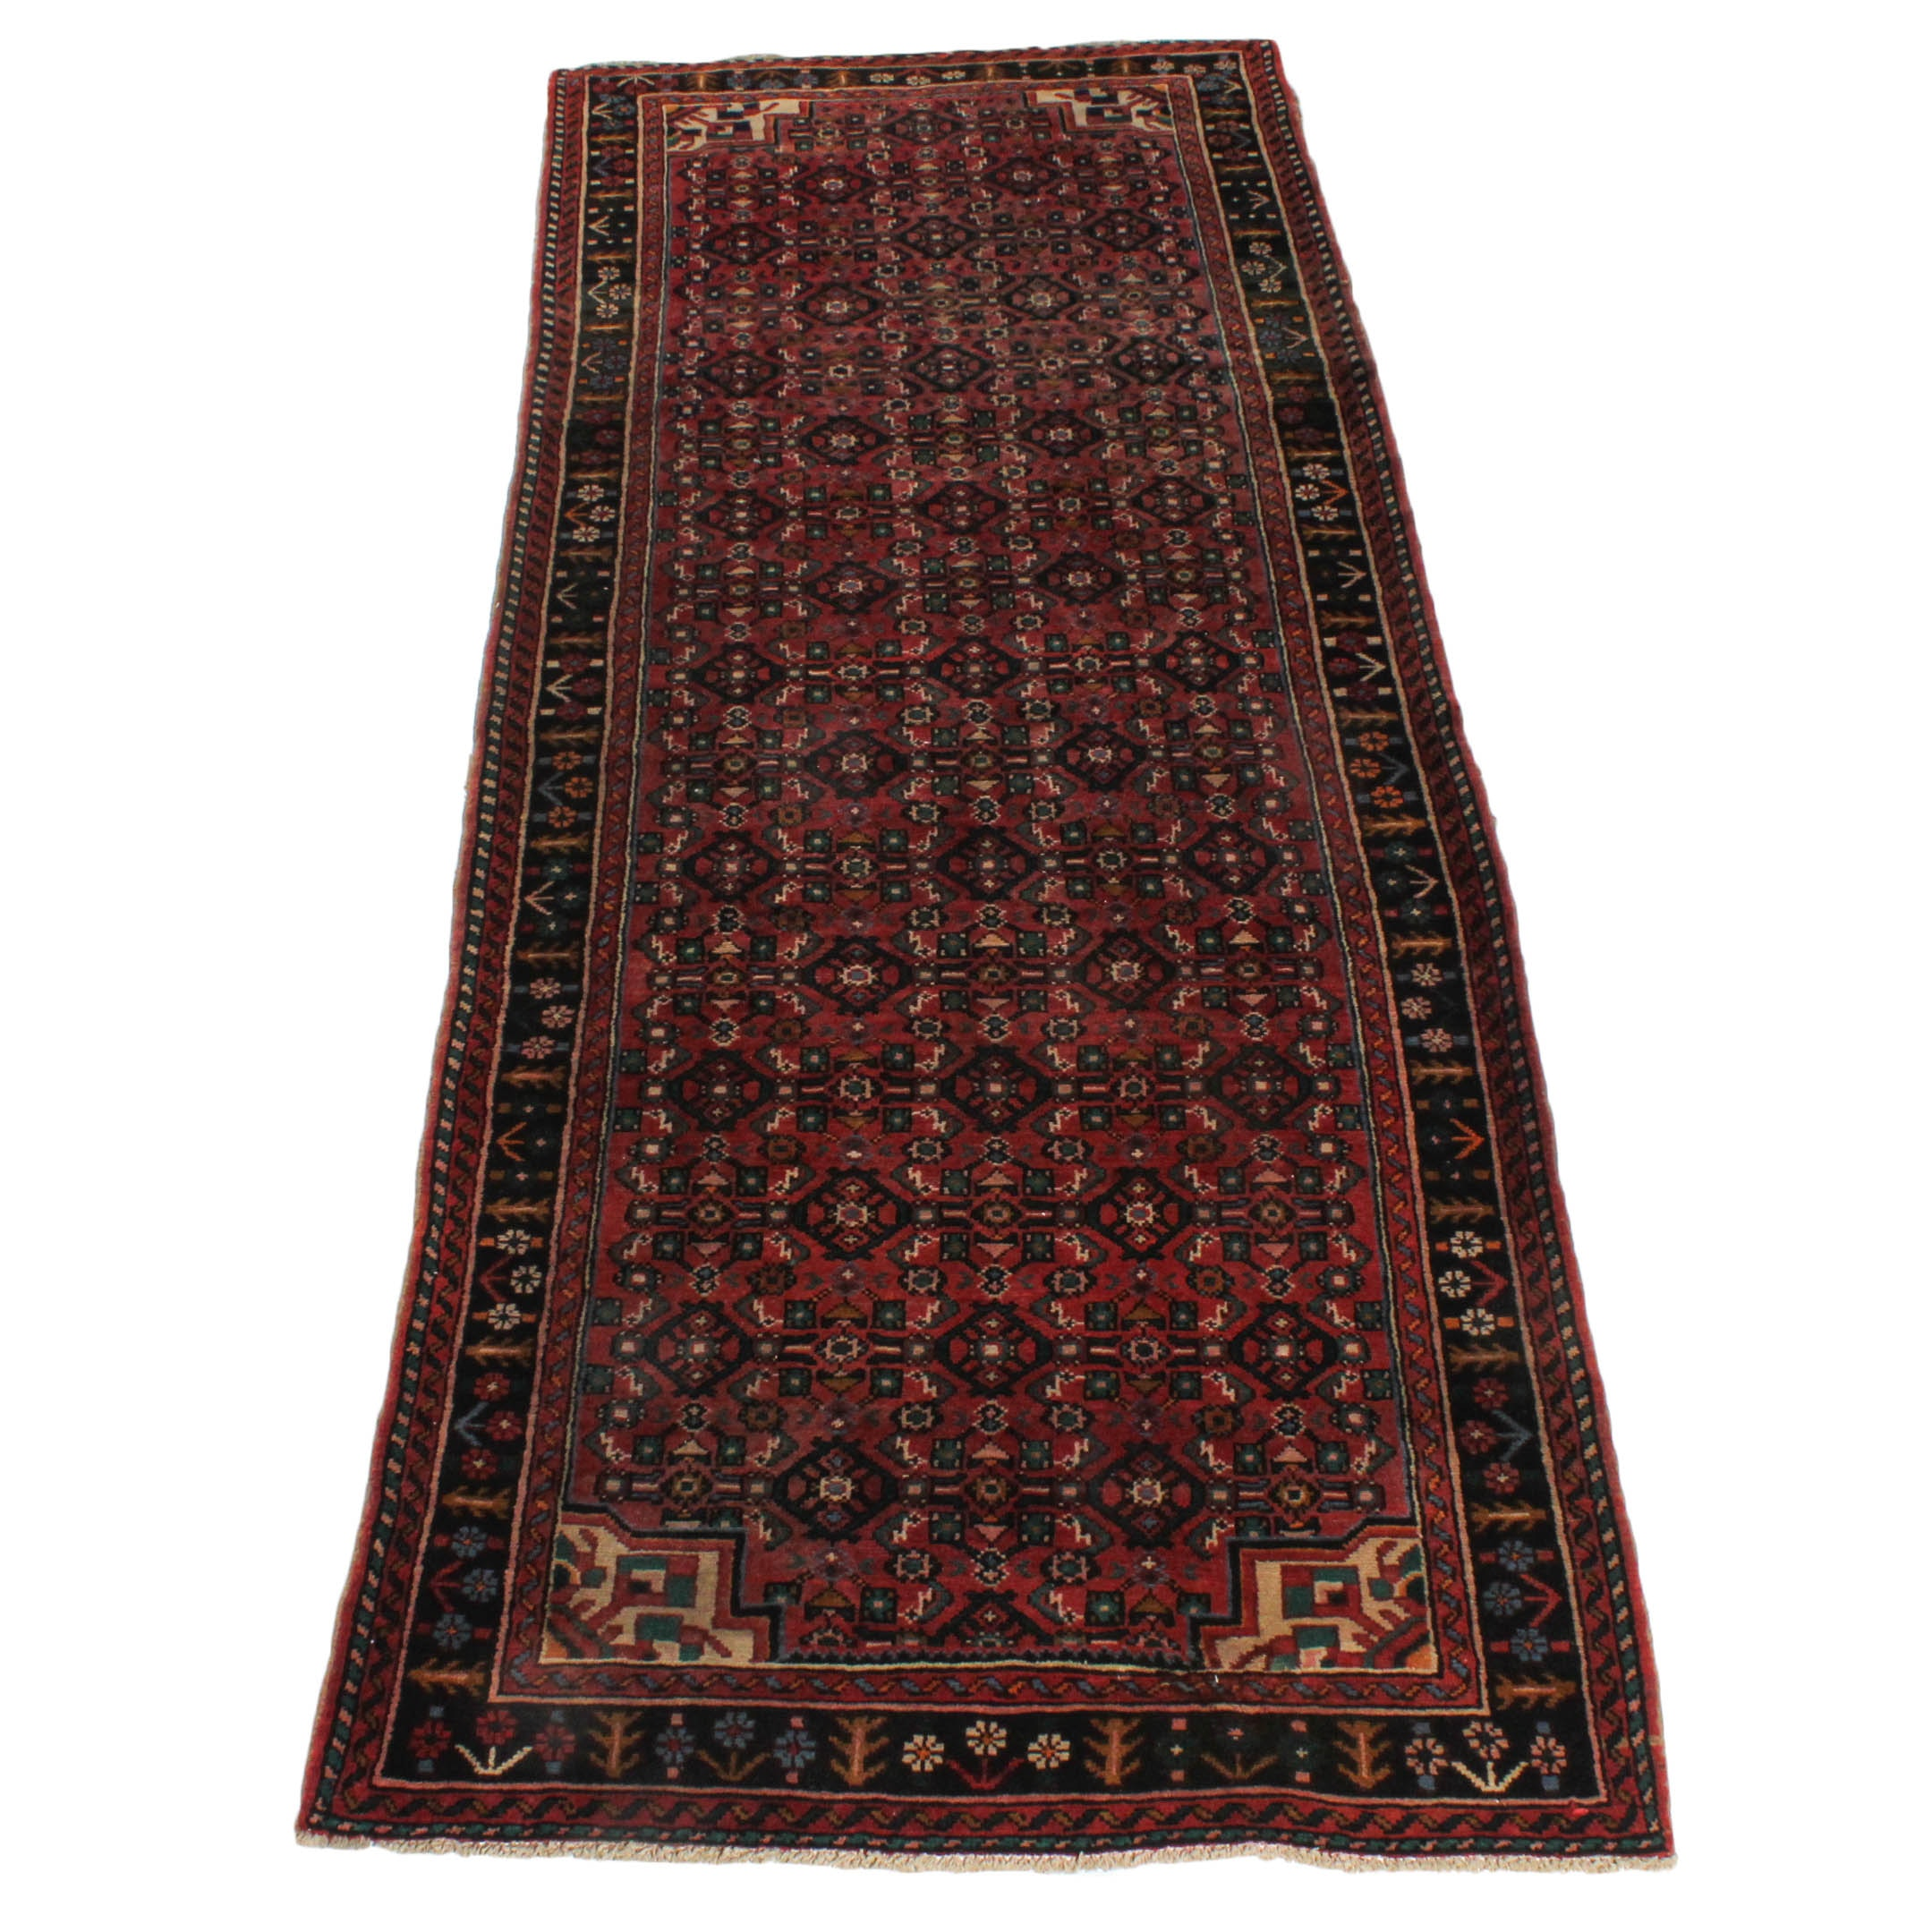 Vintage Hand-Knotted Persian Heriz Area Rug